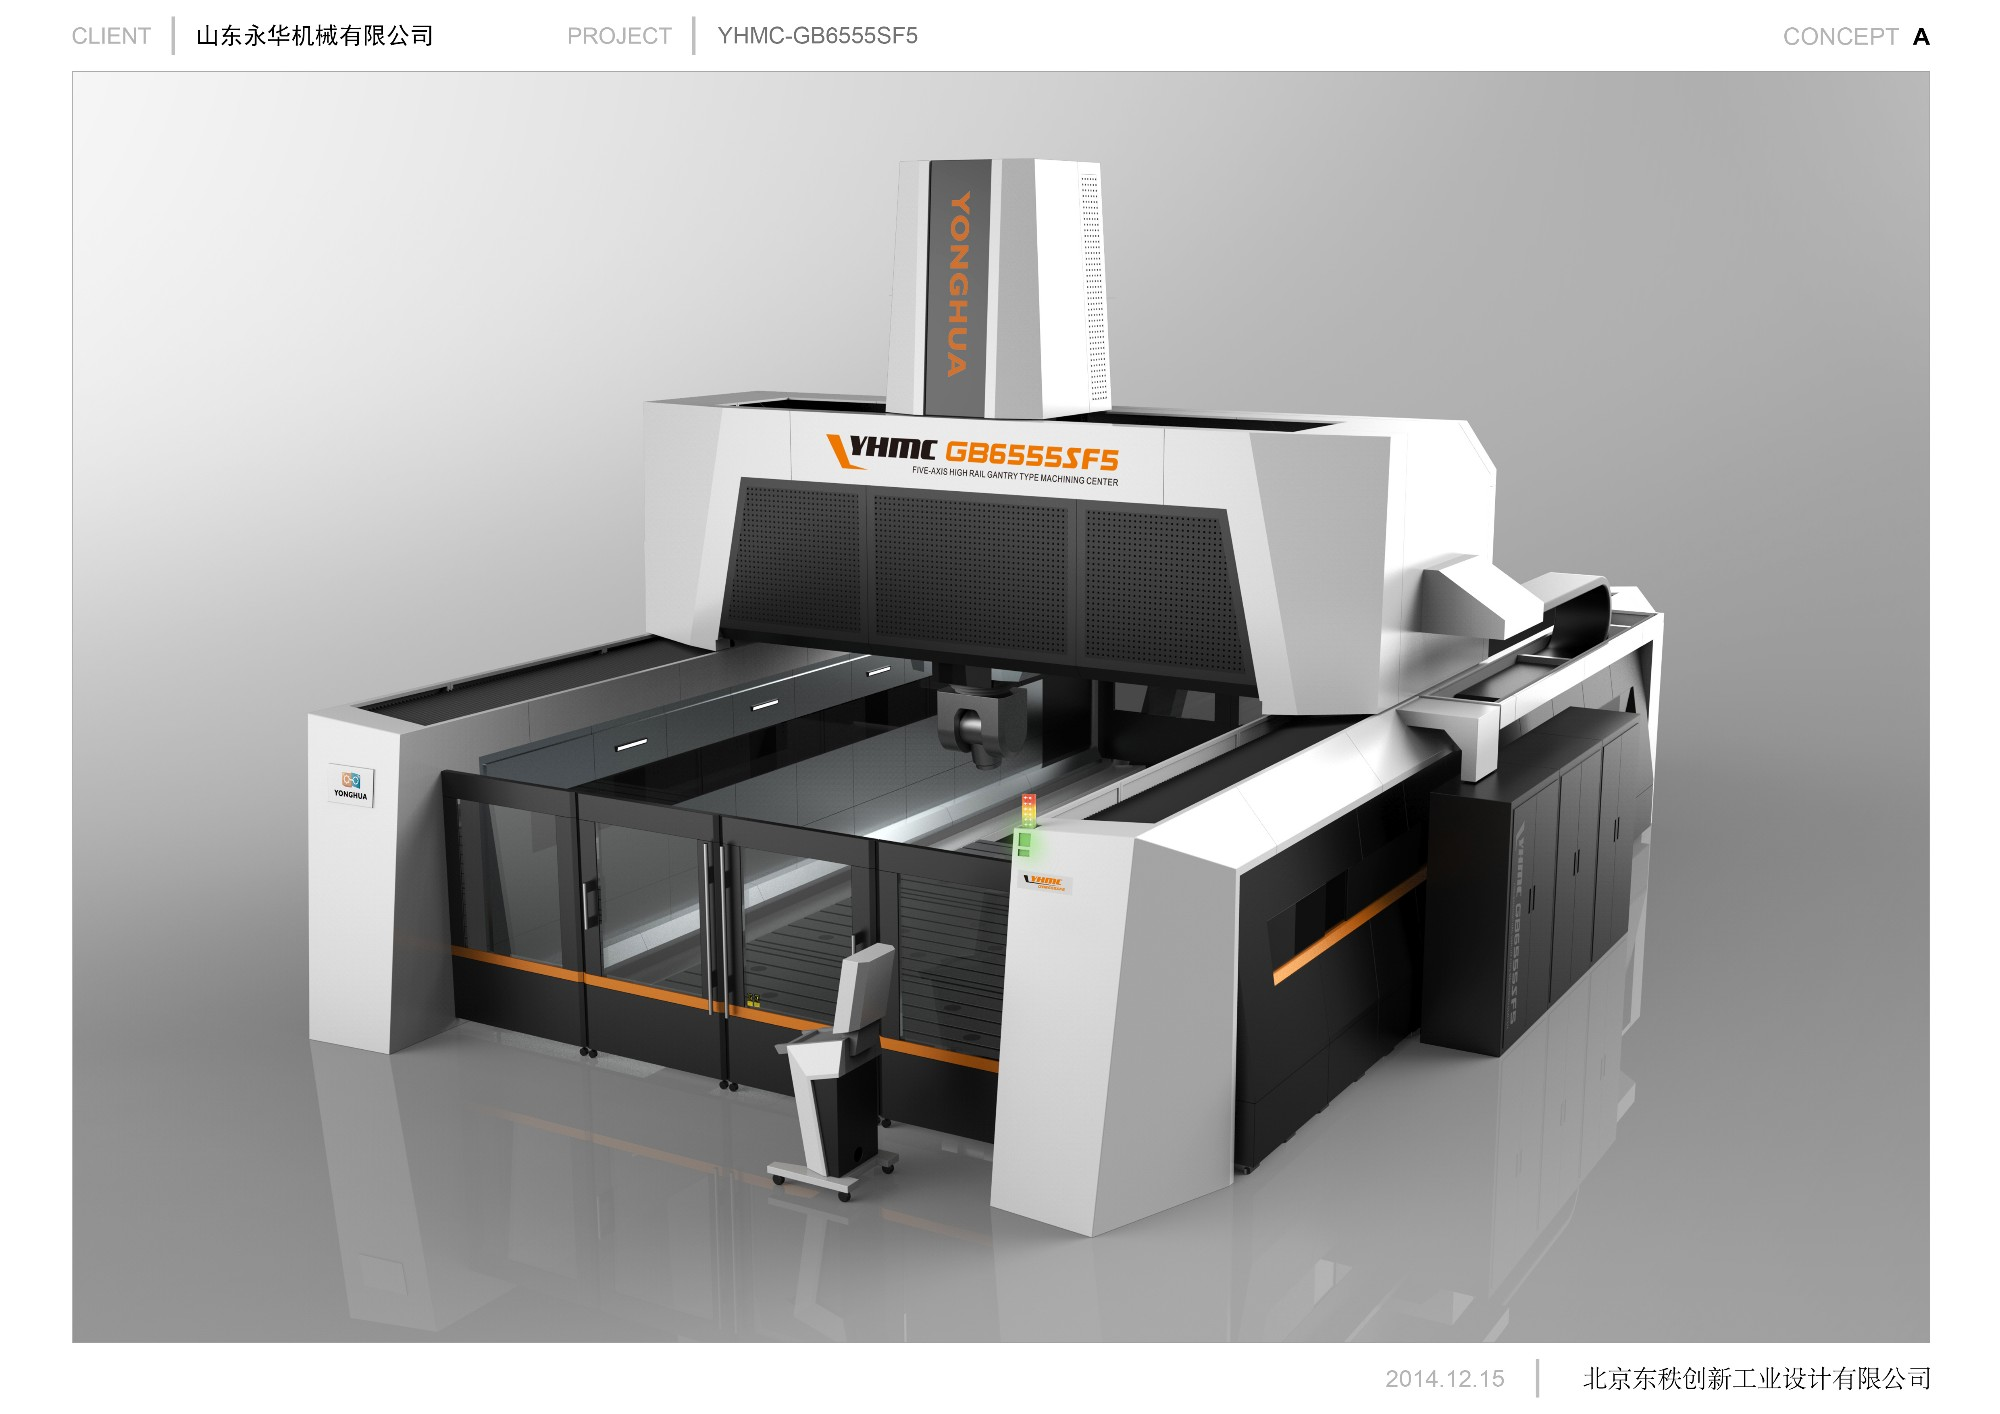 5-axis Portal Milling Machine Manufacturers, 5-axis Portal Milling Machine Factory, Supply 5-axis Portal Milling Machine